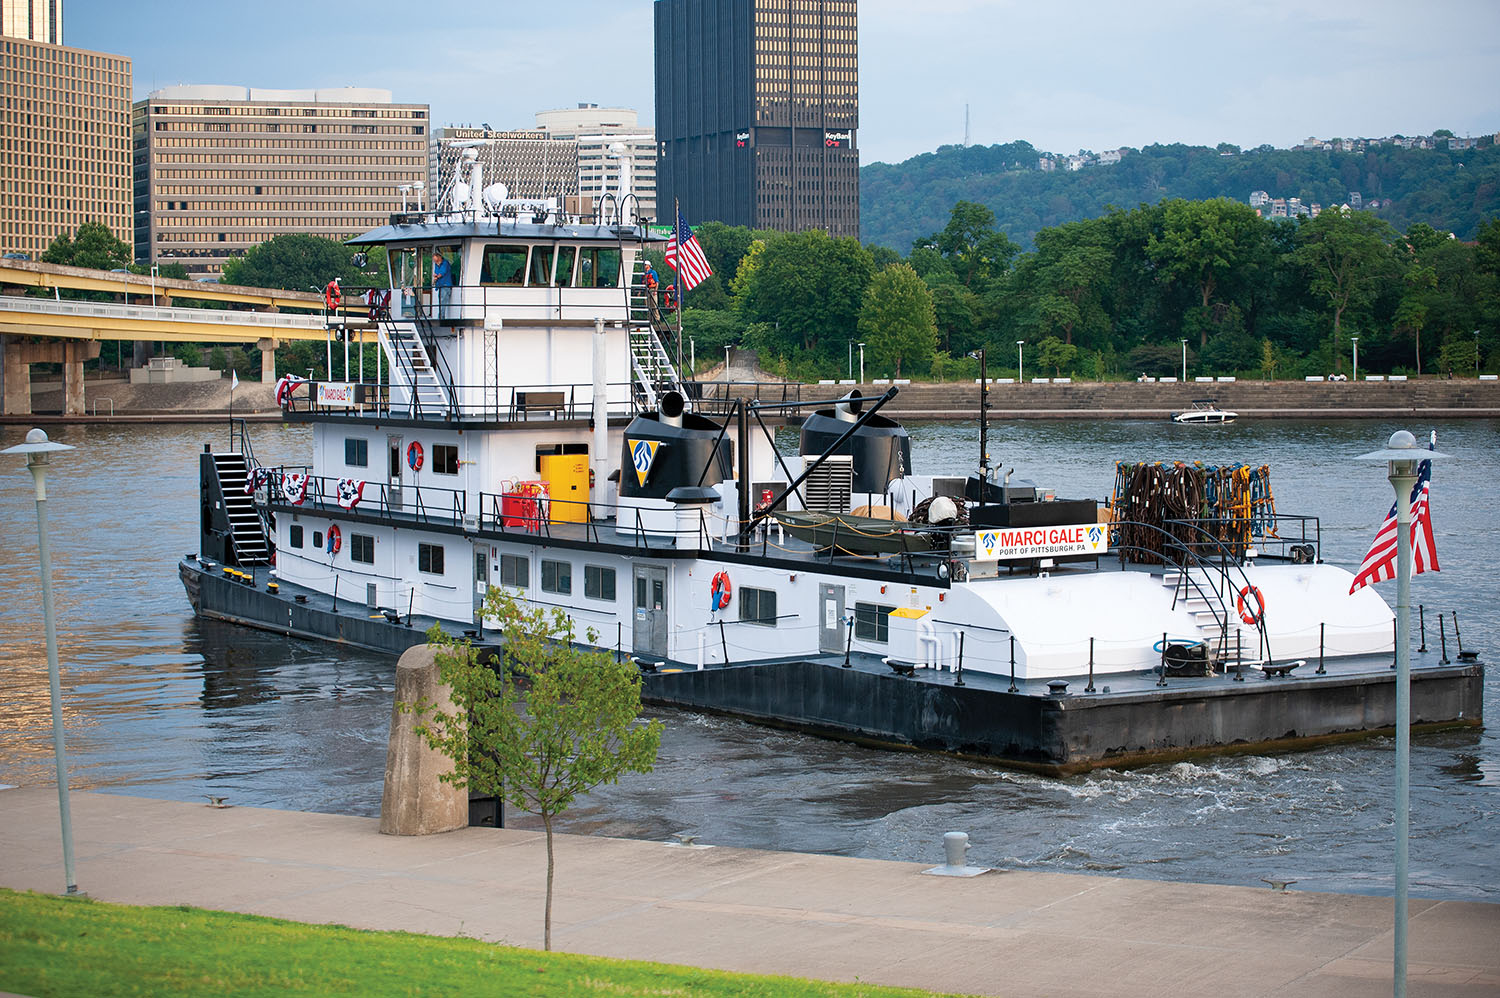 The mv. Marci Gale leaves the christening ceremony to go to work. The 4,300 hp. towboat is the former Elizabeth Lane, which Campbell bought from Canal Barge Company and had extensively refurbished at Main Iron Works. (Photo by Fisher Fotos)